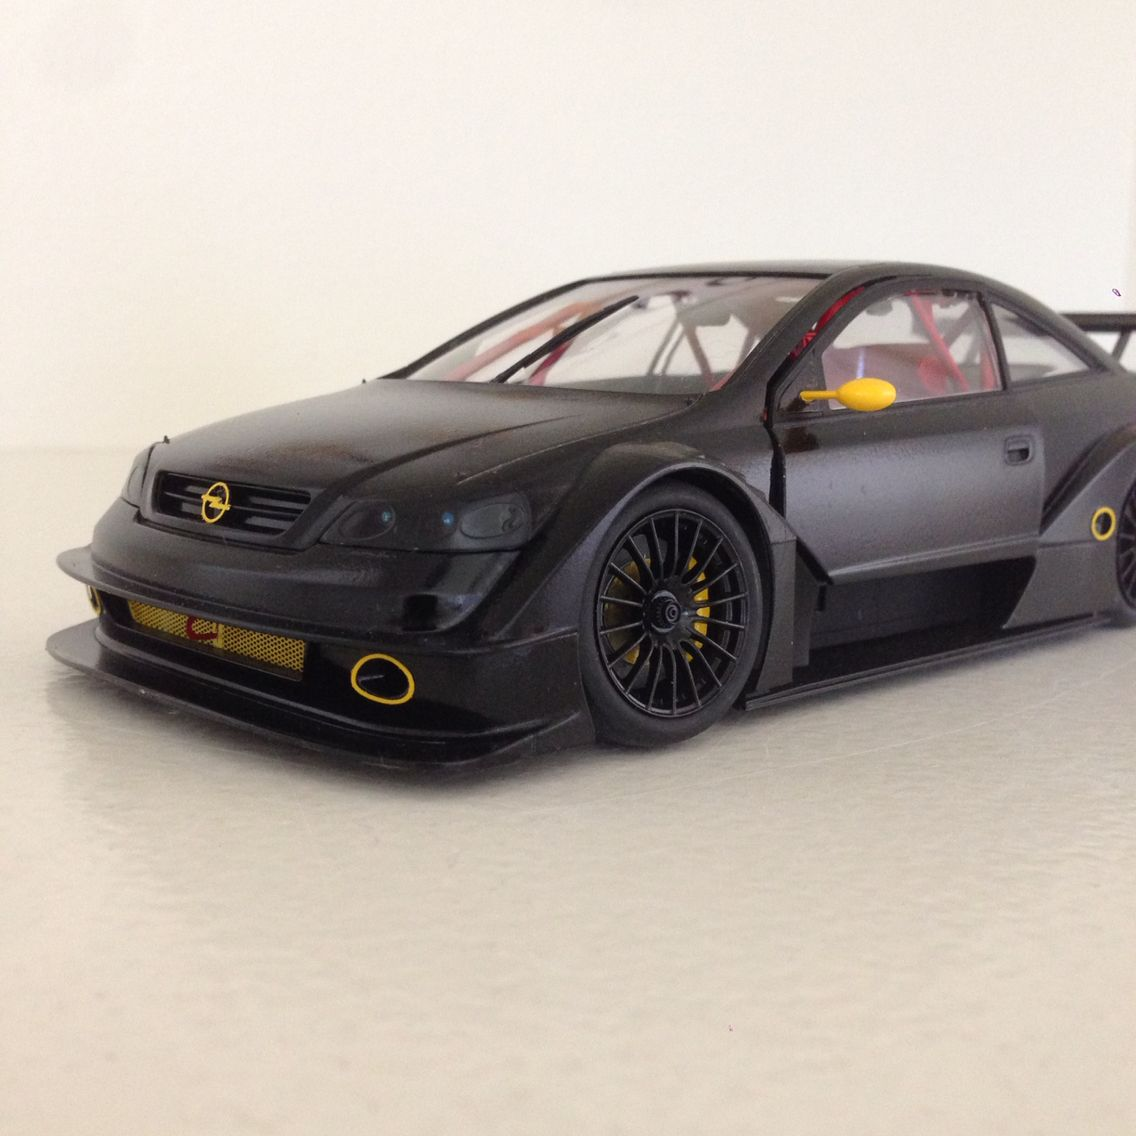 Opel Astra V8 Race Car As If It Was One Of My Personal Daily Drivers With Images Race Cars Racing Opel